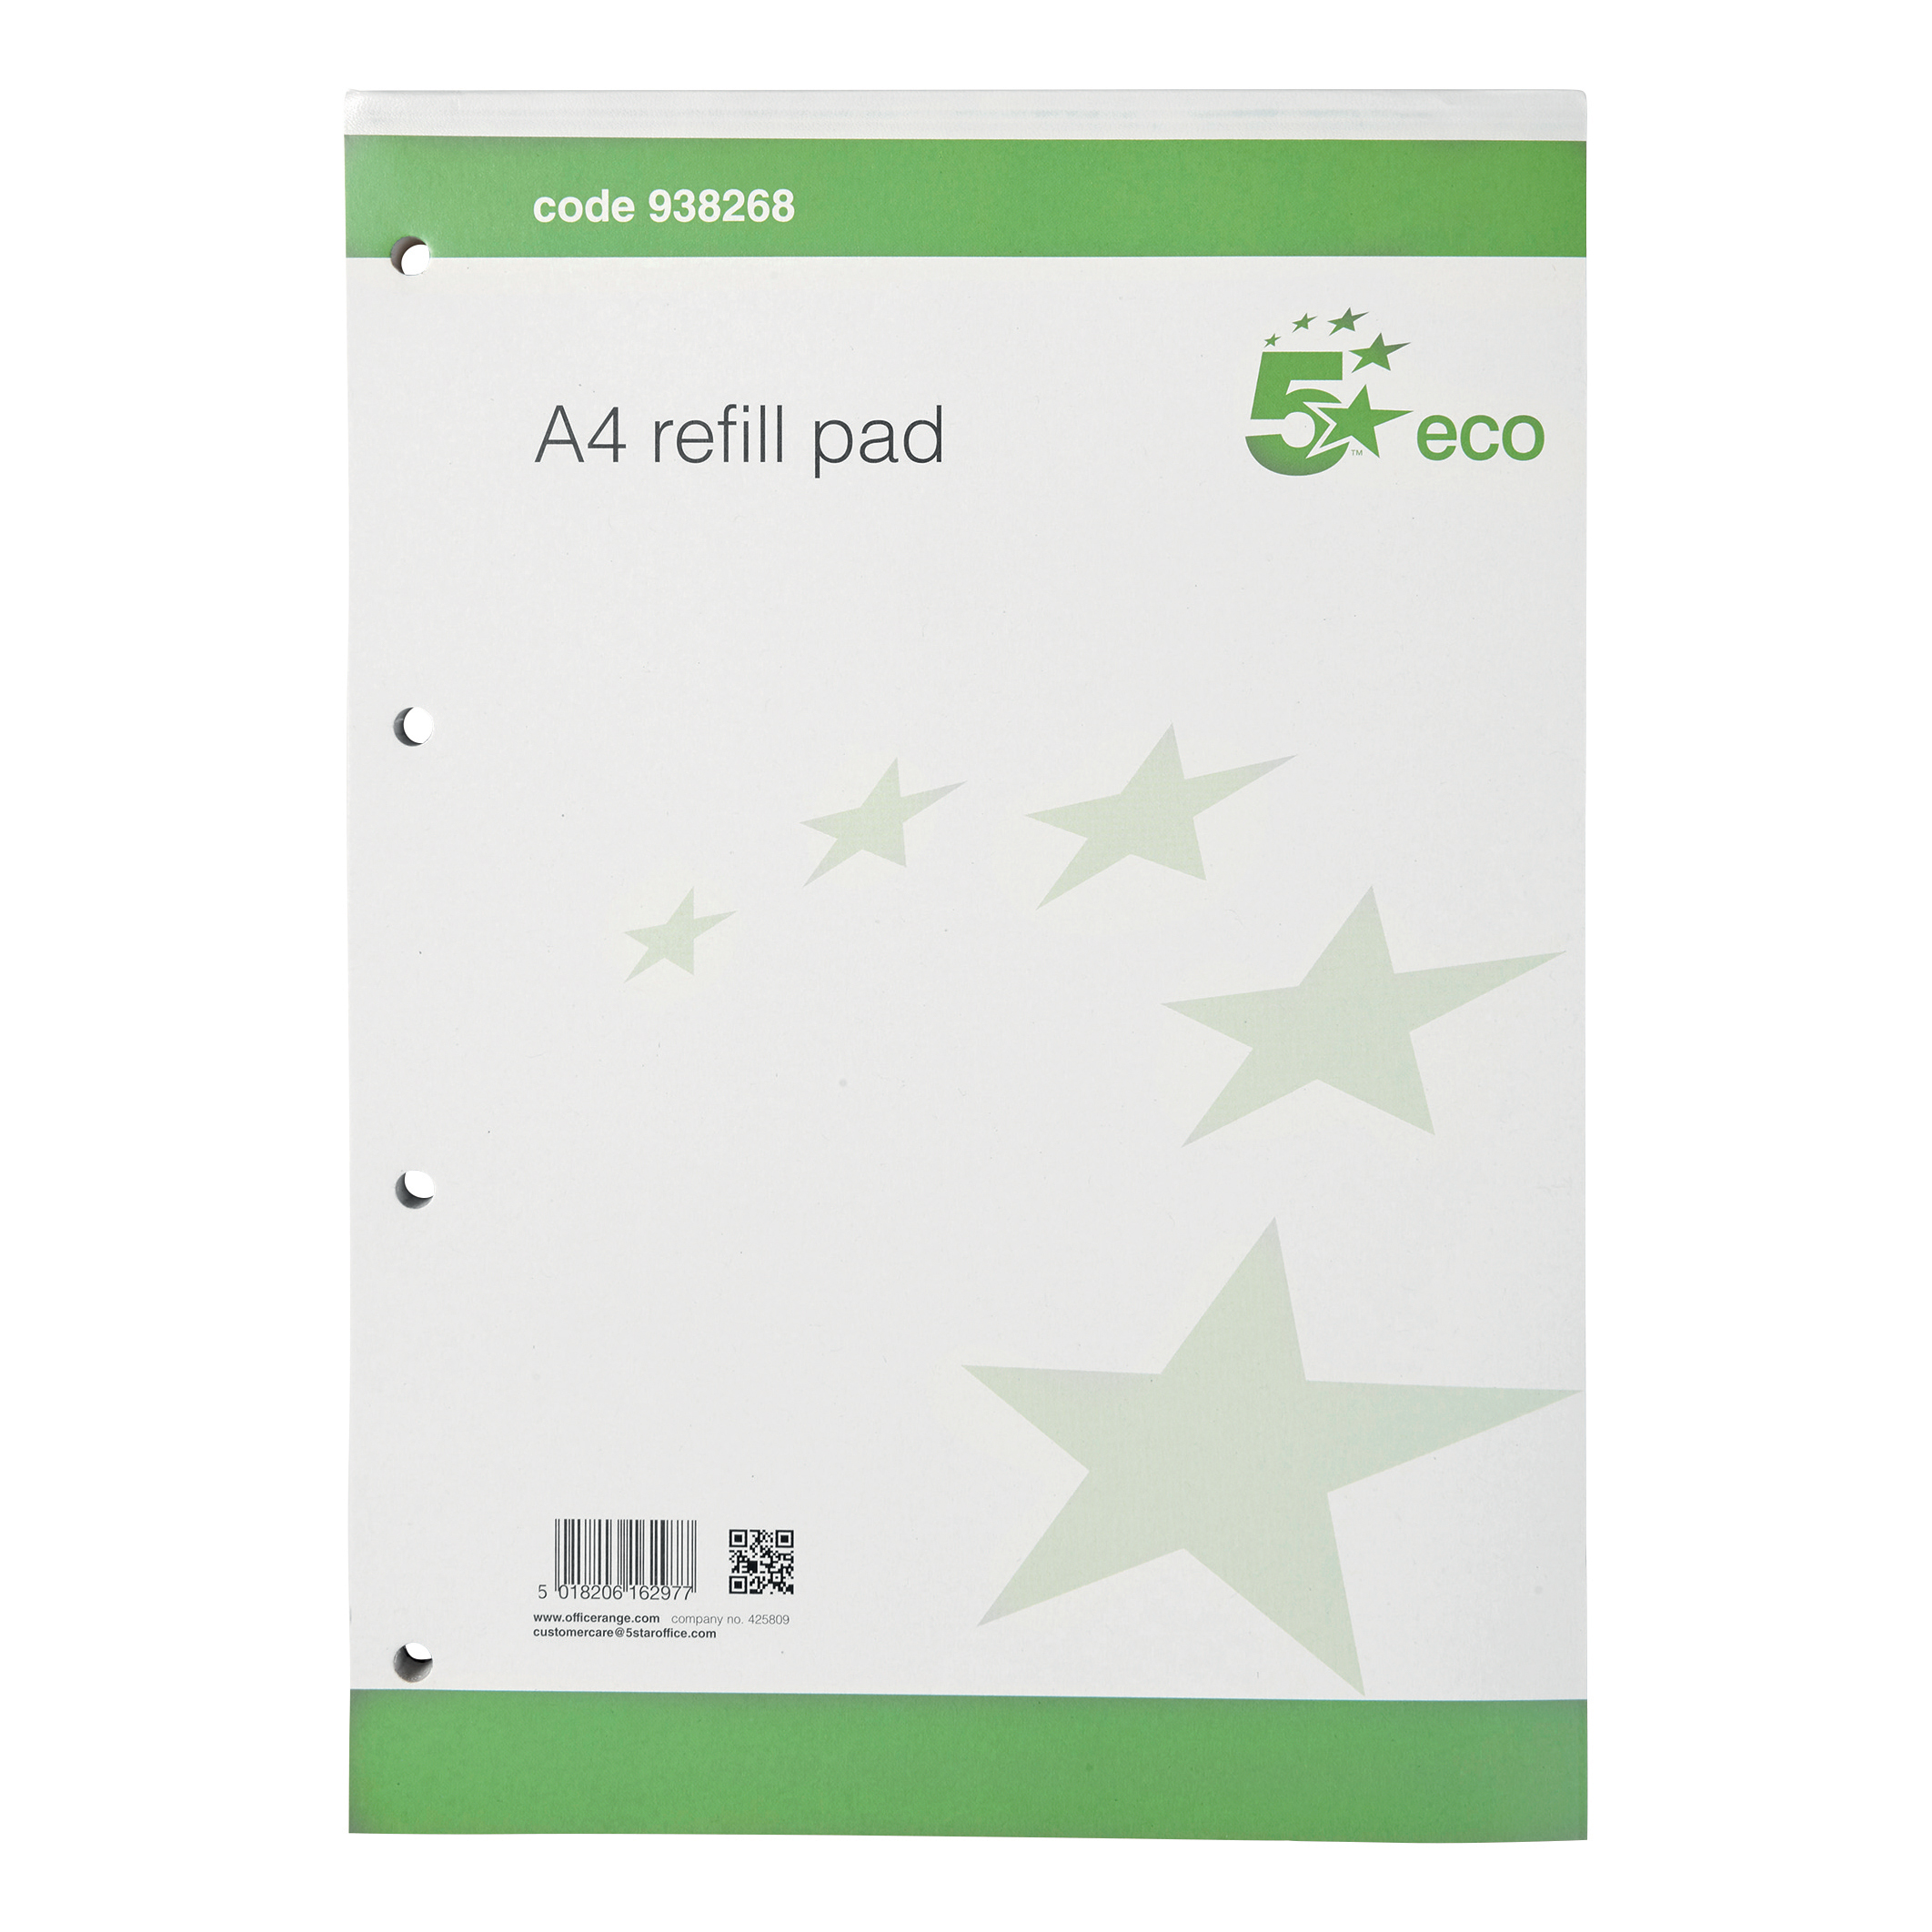 5 Star Eco Refill Pad Headbound 70gsm Ruled Margin Punched 4 Holes 160pp A4 Green Pack 10